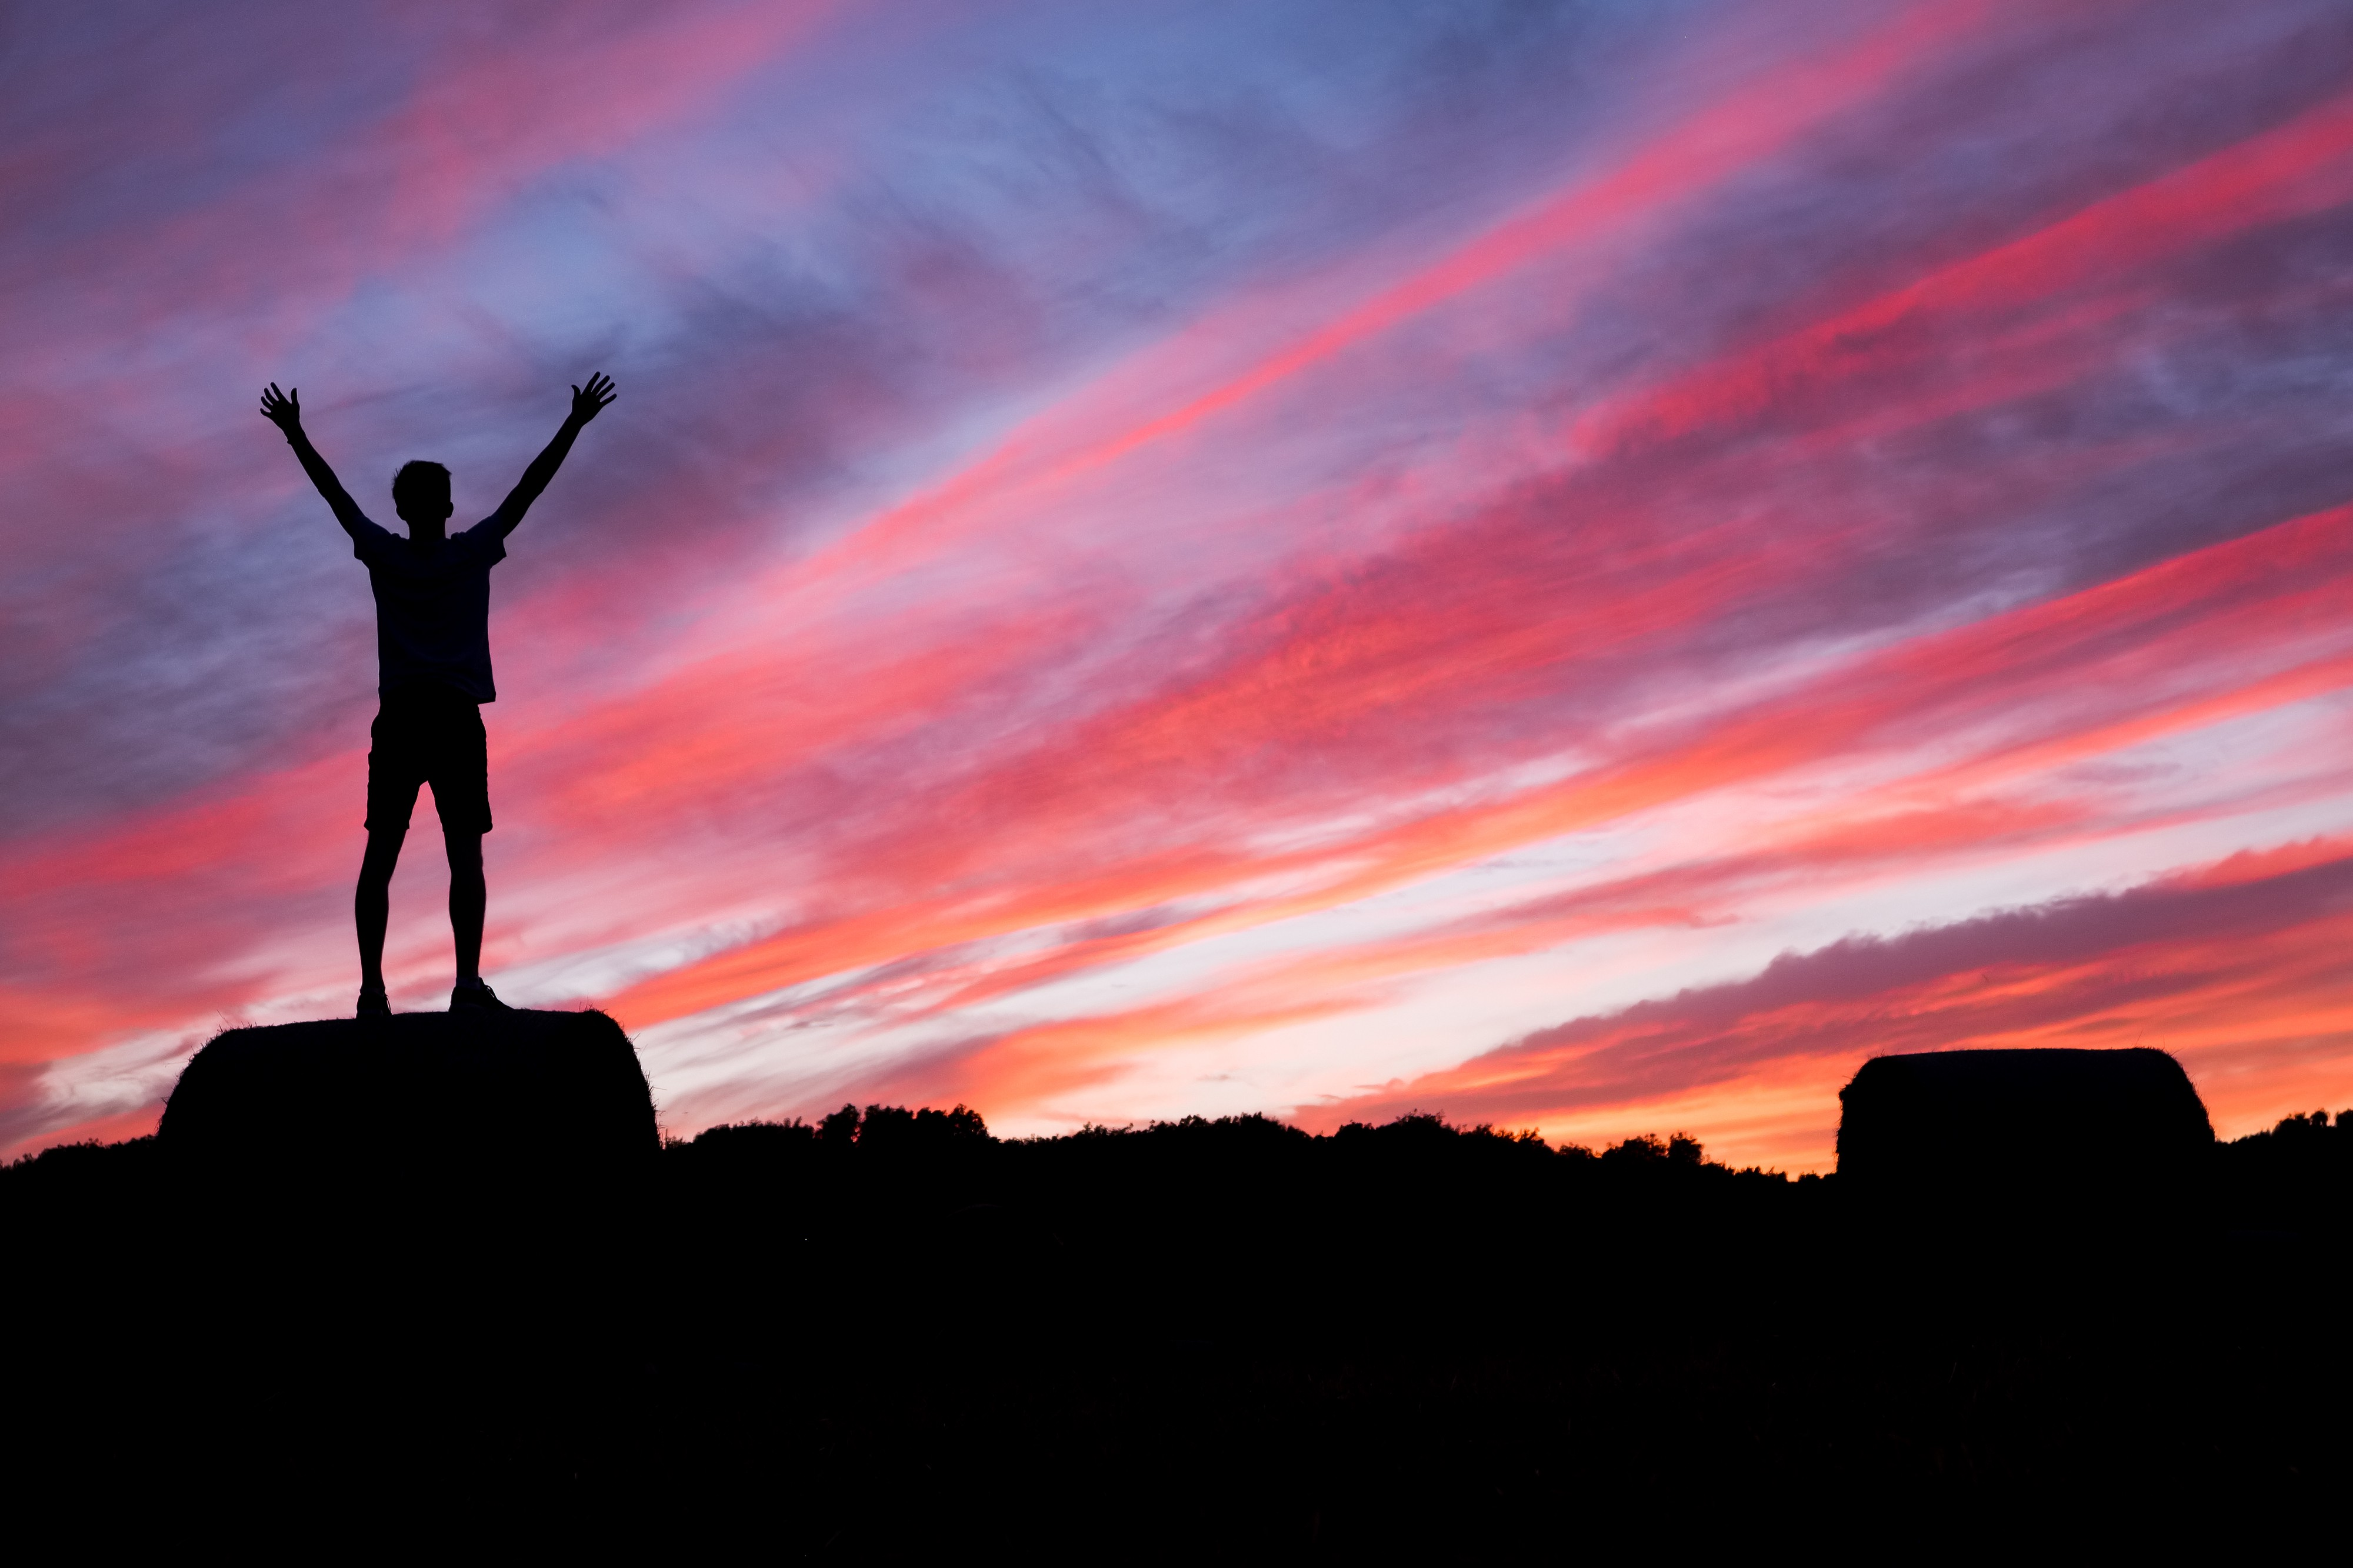 A man raises his arms in triumph while standing on a large rock and looking at a colorful sunset